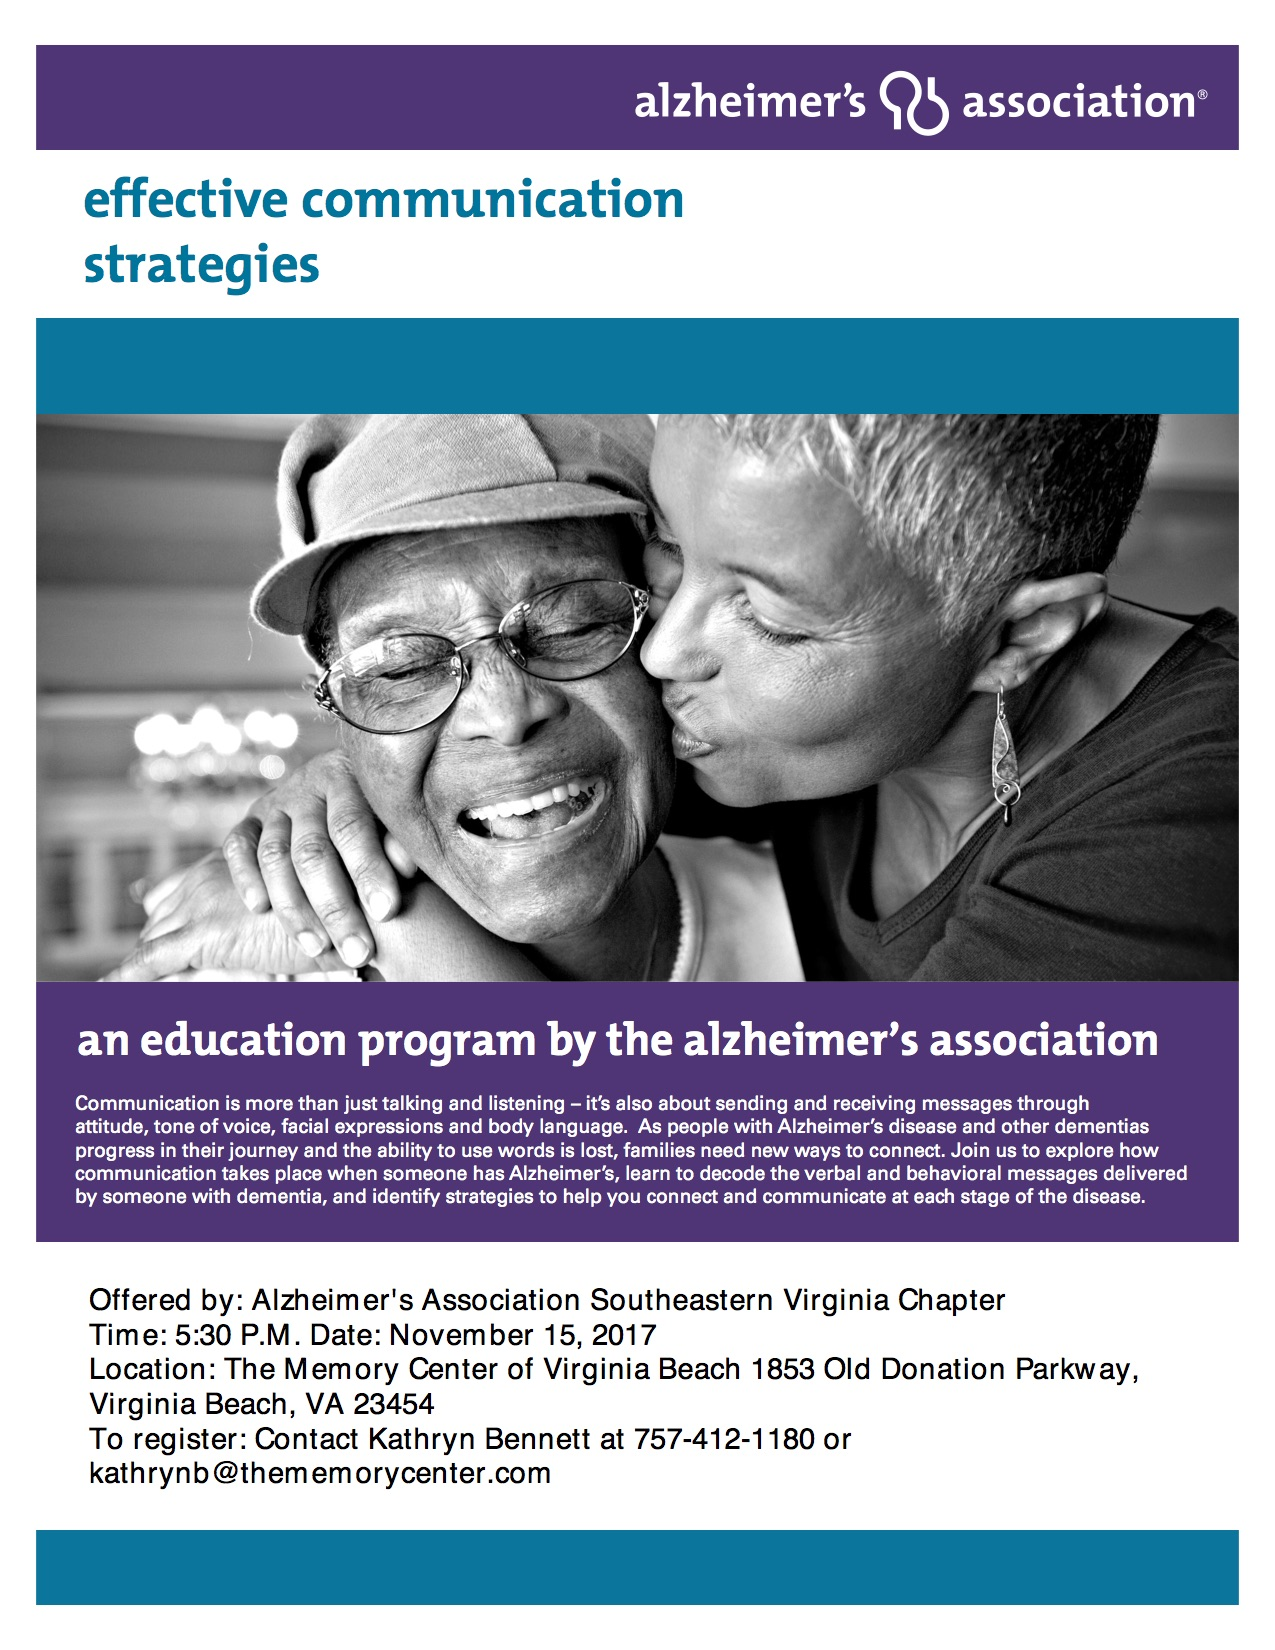 Communicating Effectively When Alzheimers Is an Issue